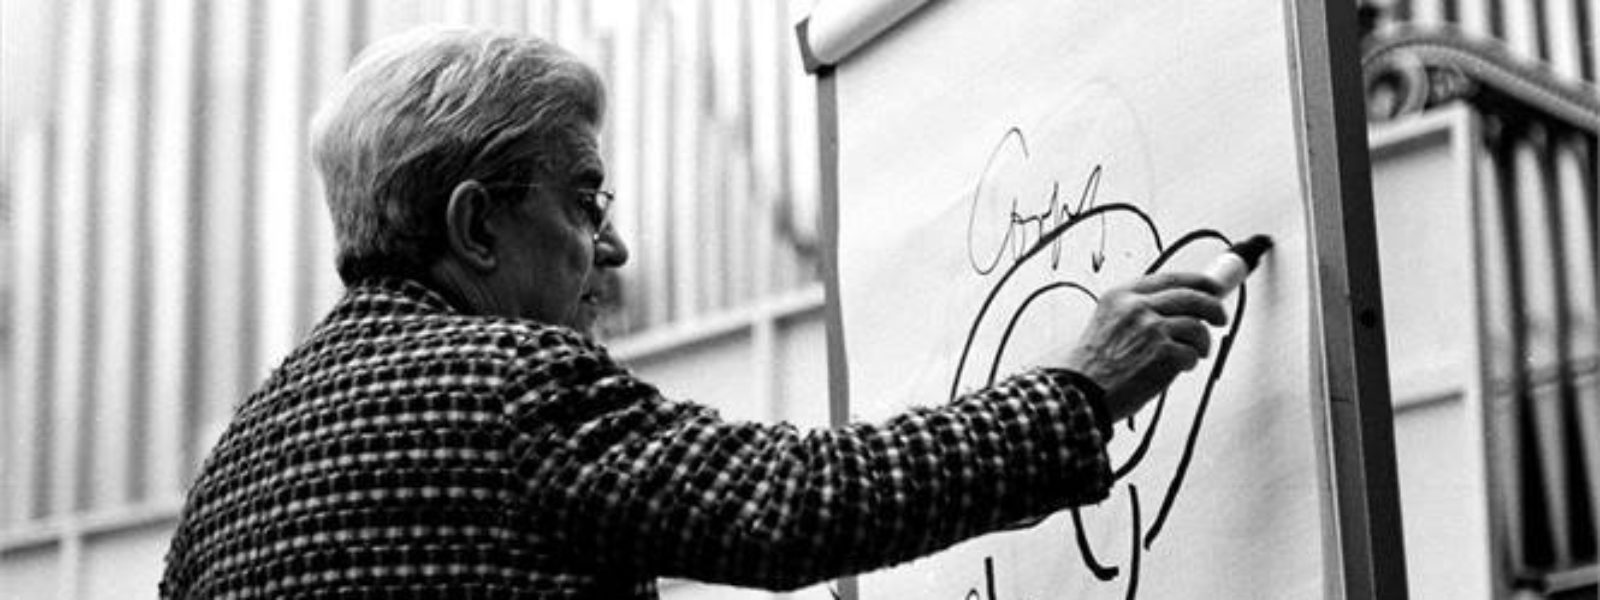 Jacques Lacan teaching -Psychoanalysis After Freud: Jacques Lacan